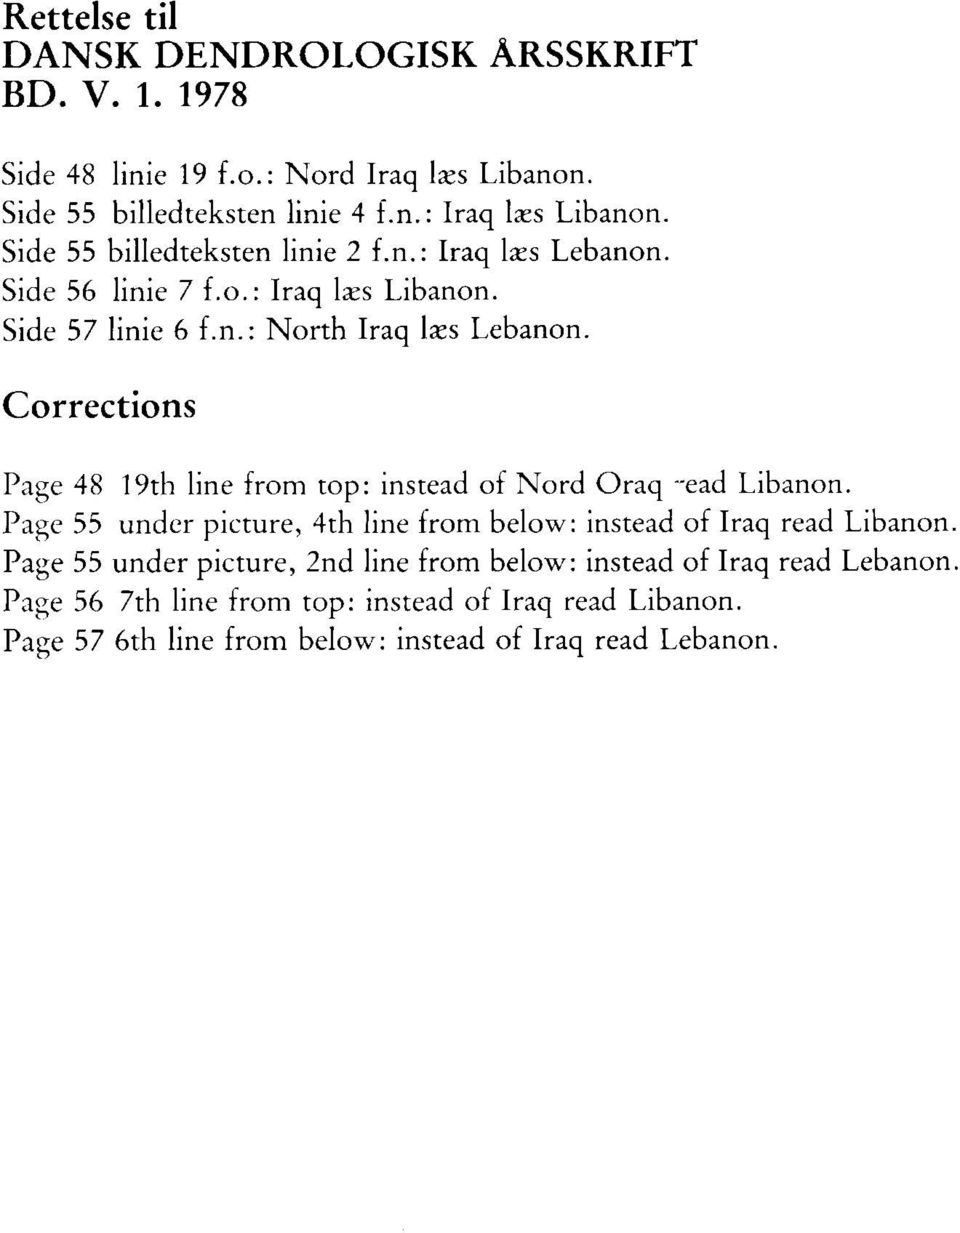 Corrections Page 48 19th line from top: instead of Nord Oraq ~ead Libanon. Page 55 under picture, 4th line from below: instead of Iraq read Libanon.